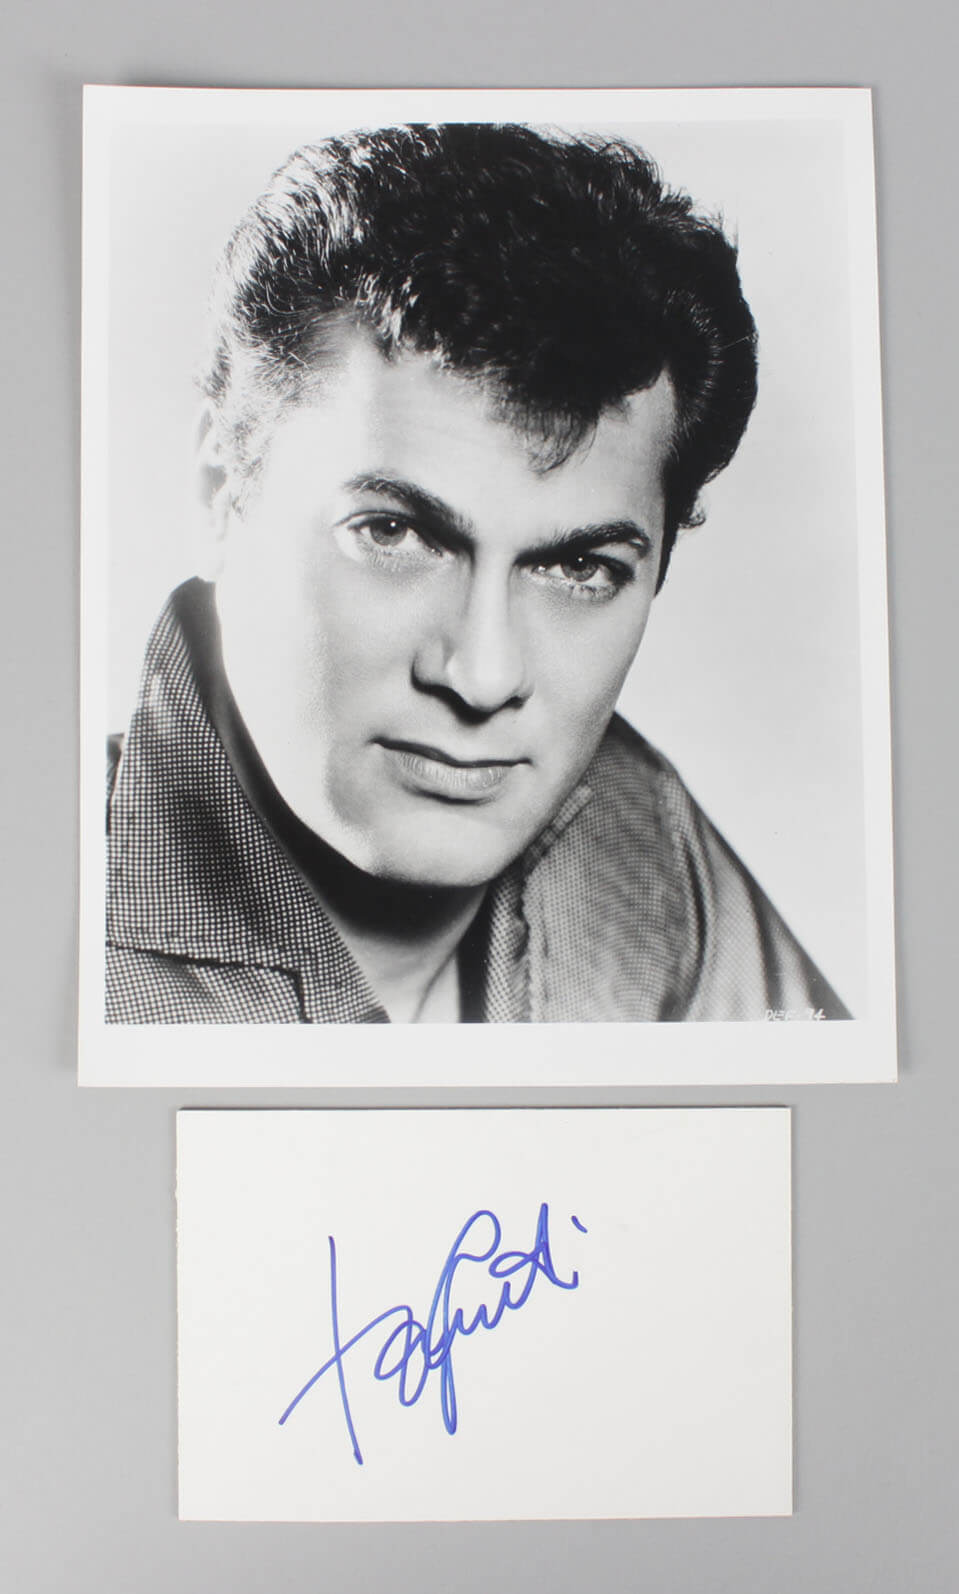 1953 Houdini - Tony Curtis Signed 4x6 Cut & Photo (Unsigned) - COA JSA